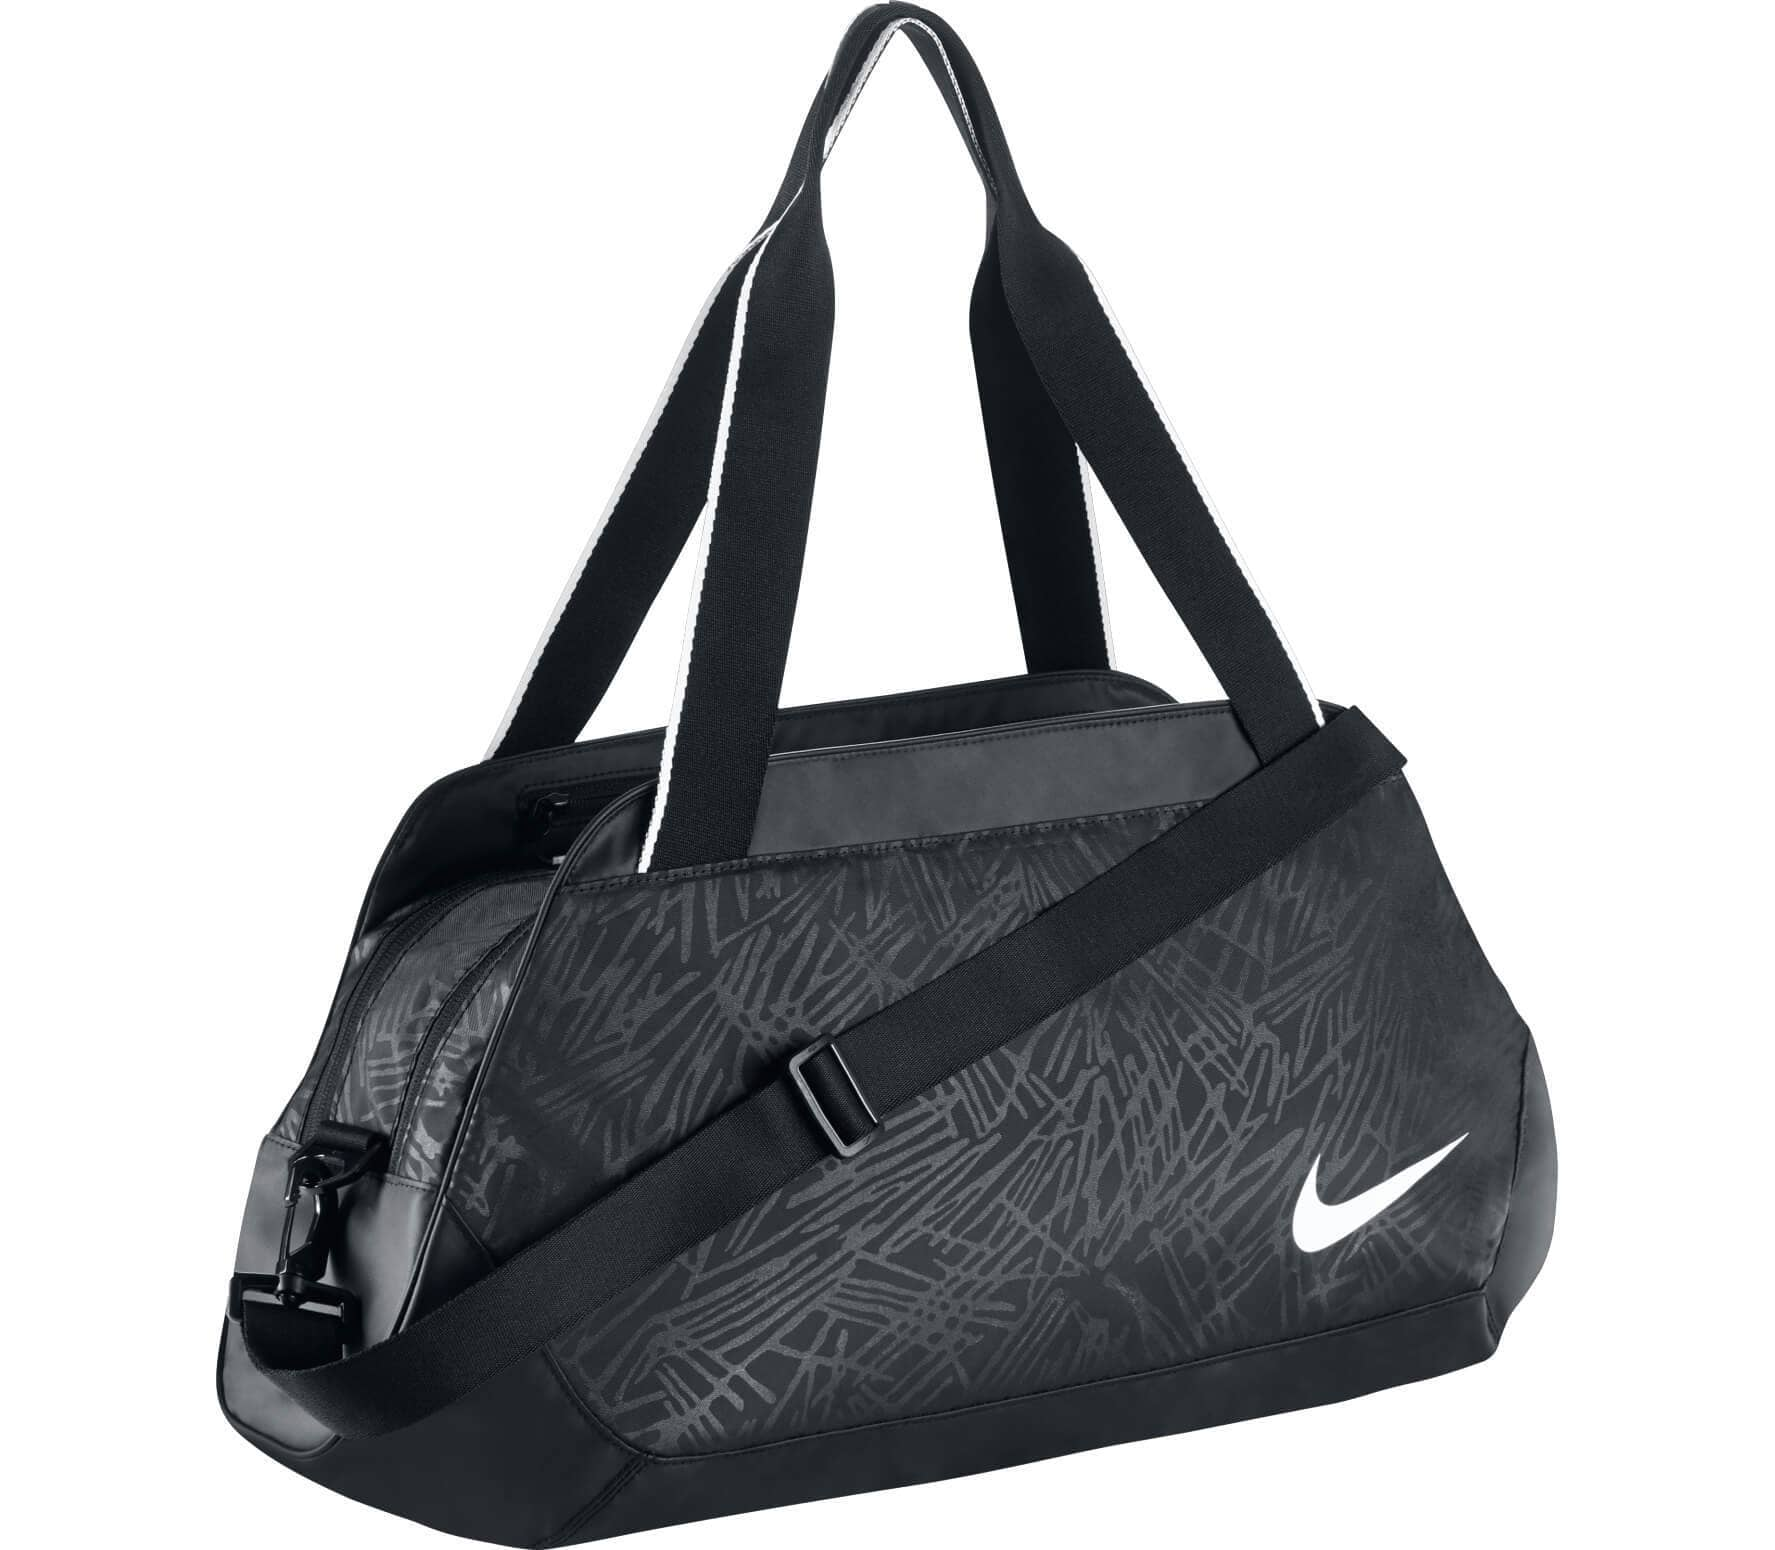 d483f483a28c9 Nike - Legend Club Print Damen Trainingstasche (schwarz) im Online ...